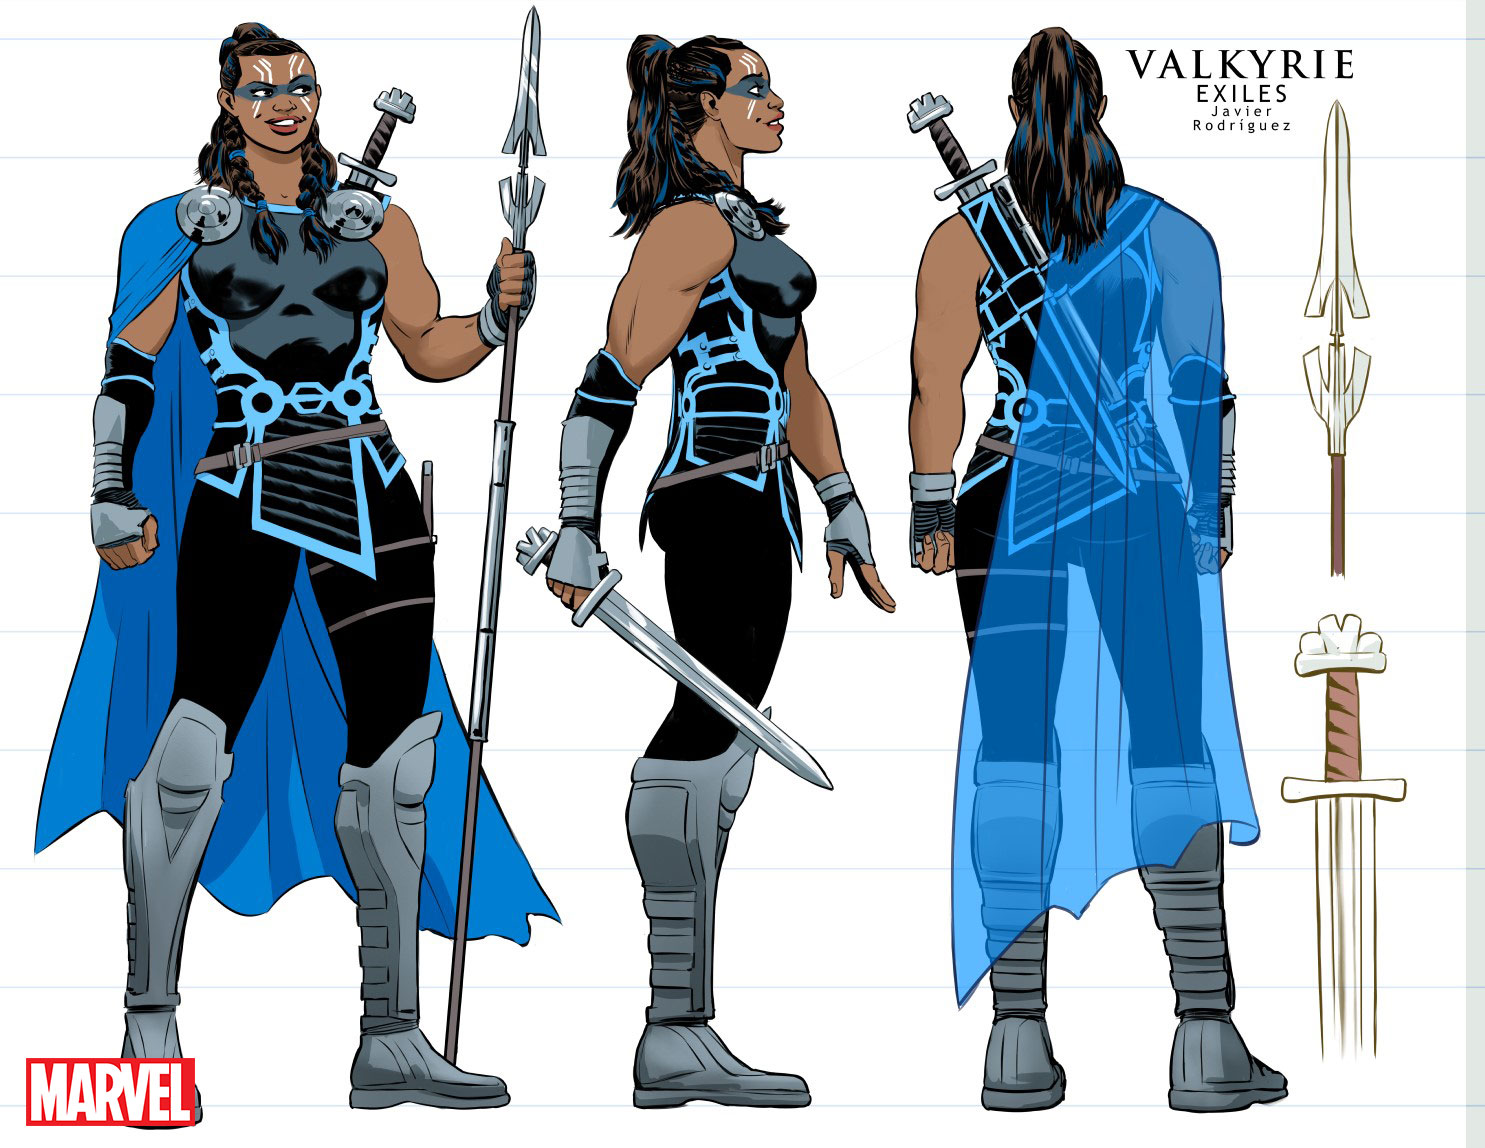 Valkyrie Character design